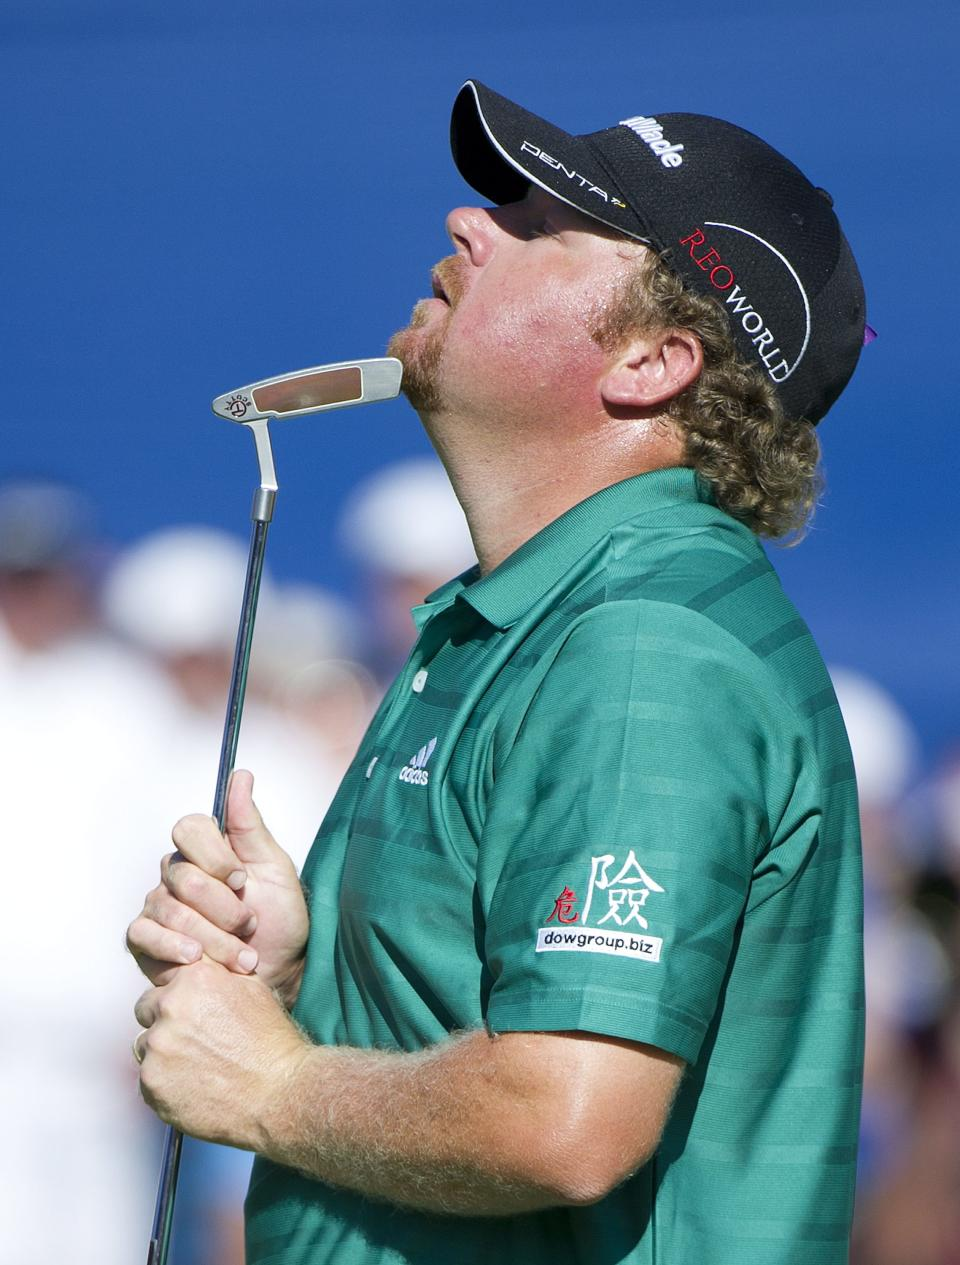 William McGirt reacts with his putter after missing a put to force a play-off on 18 during final round play at the 2012 Canadian Open at the Hamilton Golf and County Club in Ancaster, Ontario, on Sunday, July 29, 2012. (AP Photo/The Canadian Press, Nathan Denette)